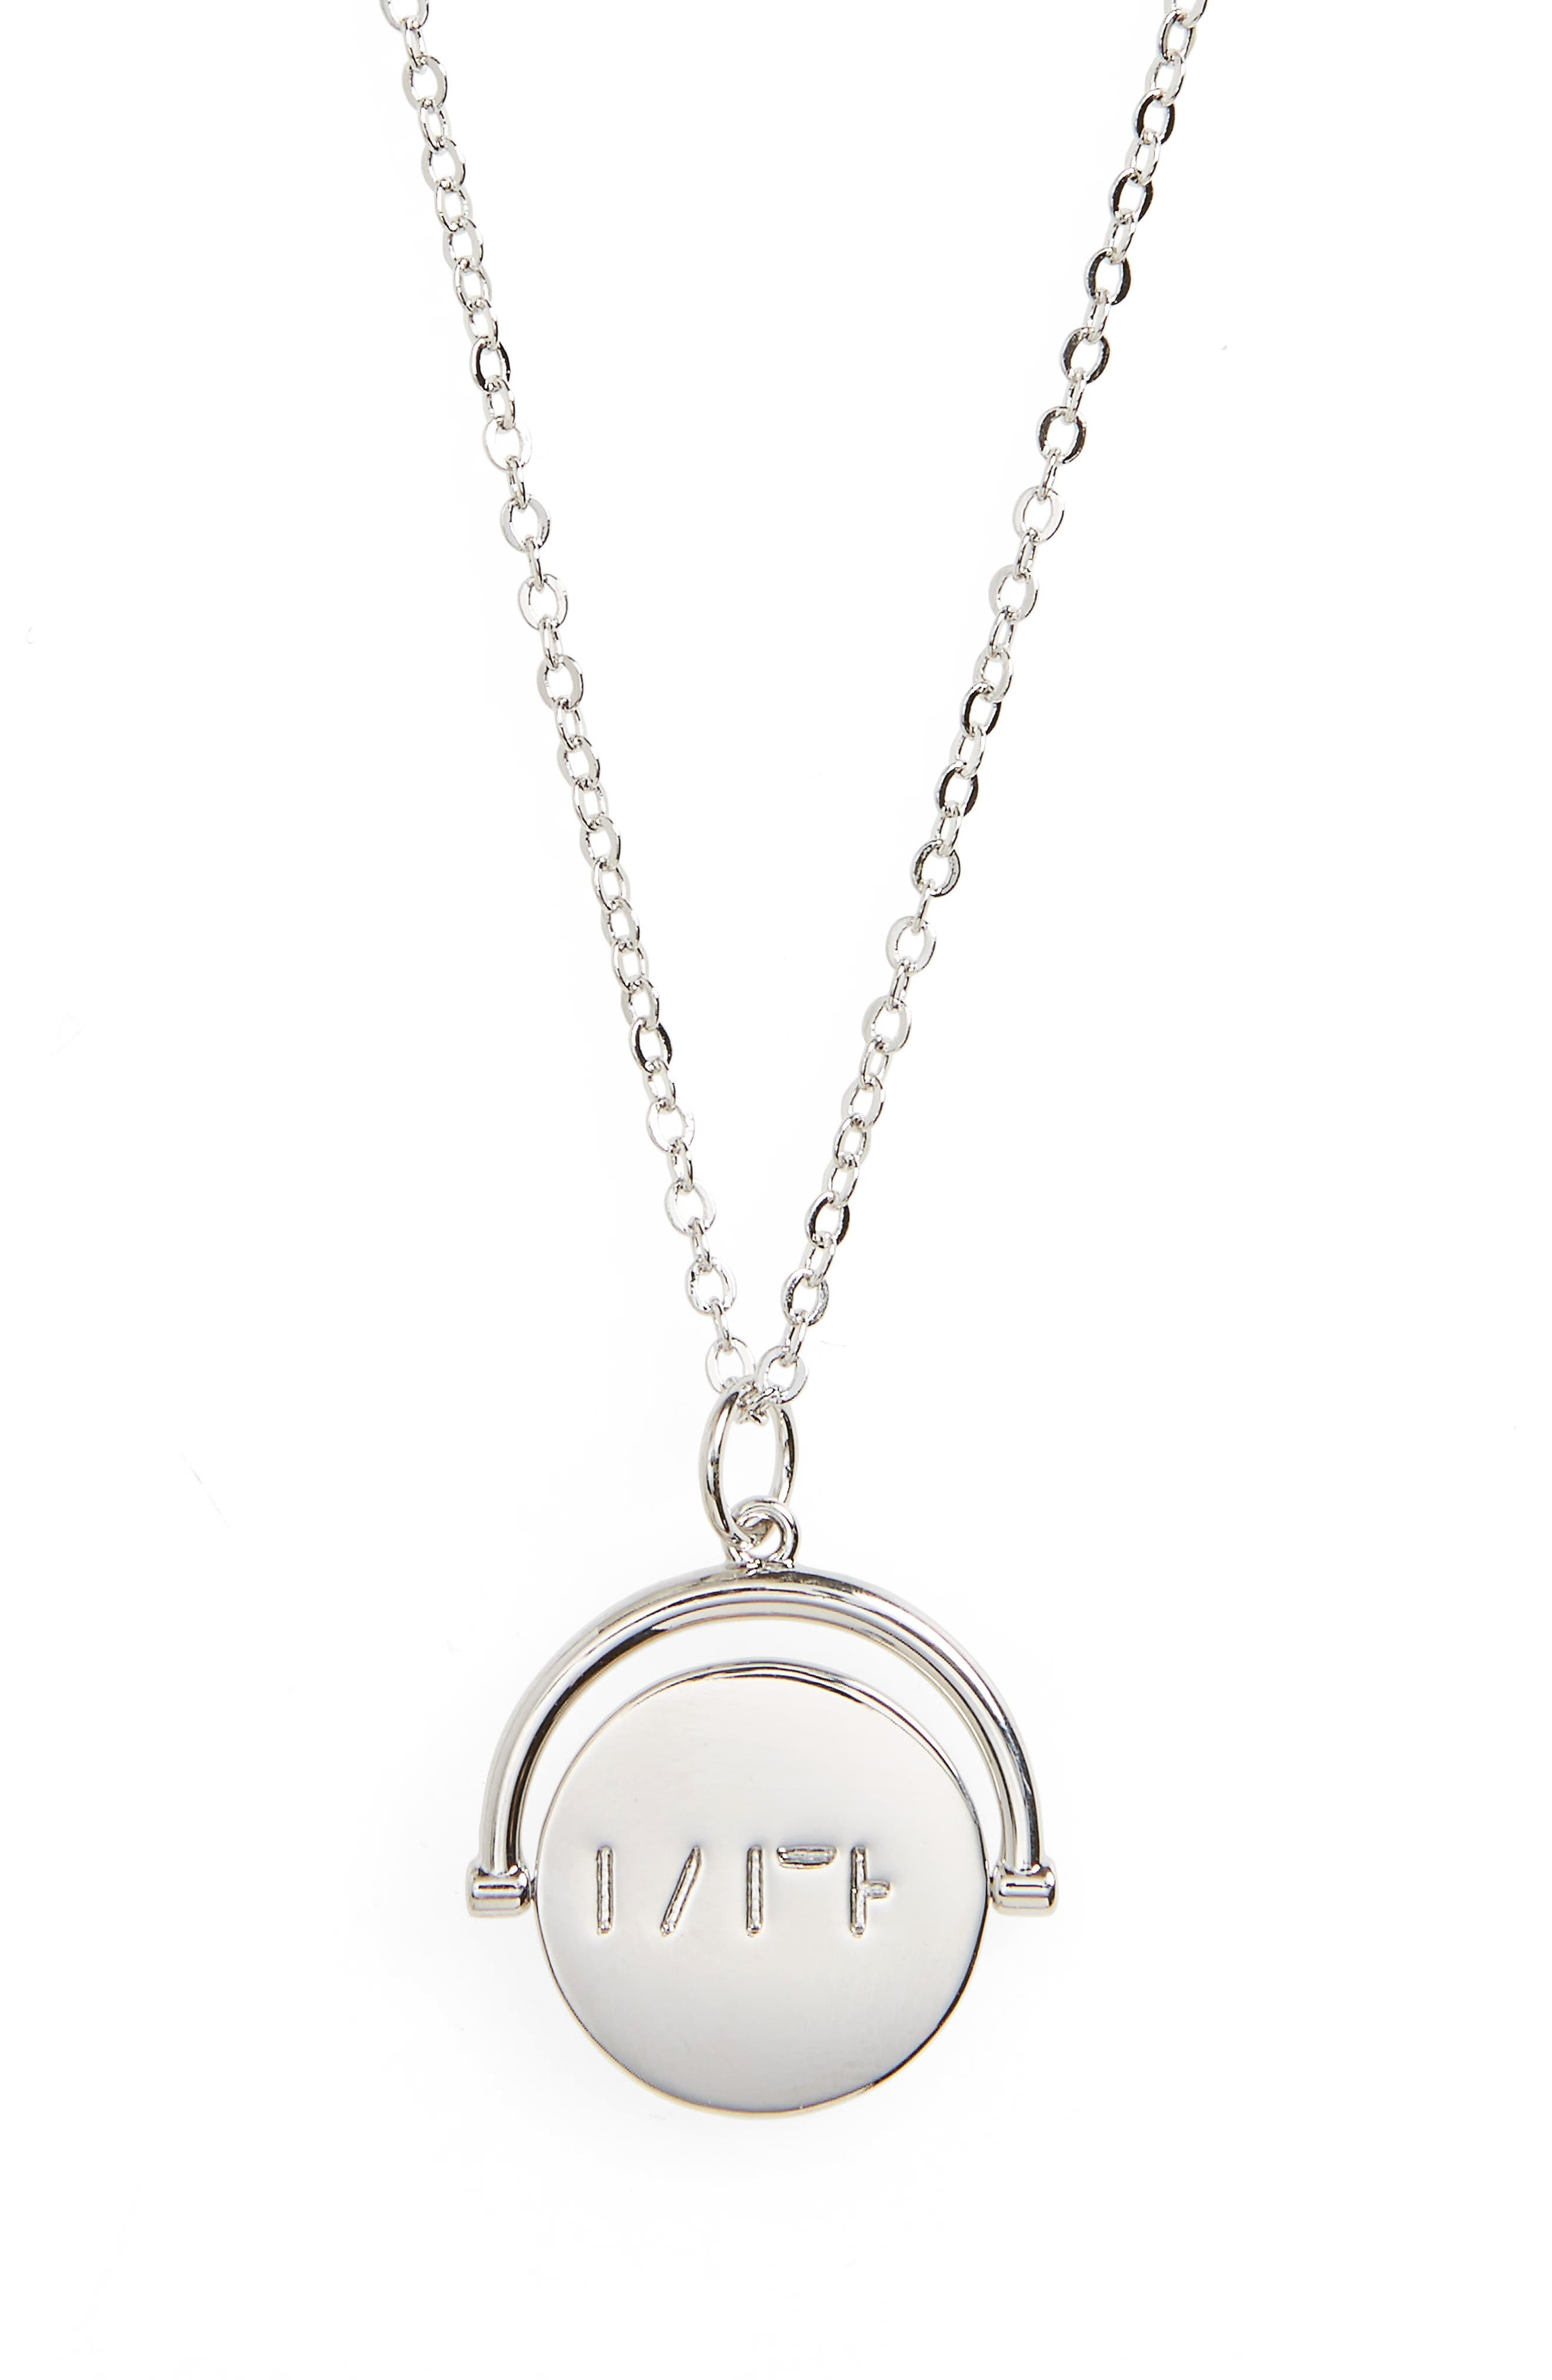 Main Image - lulu dk Faith Love Code Charm Necklace